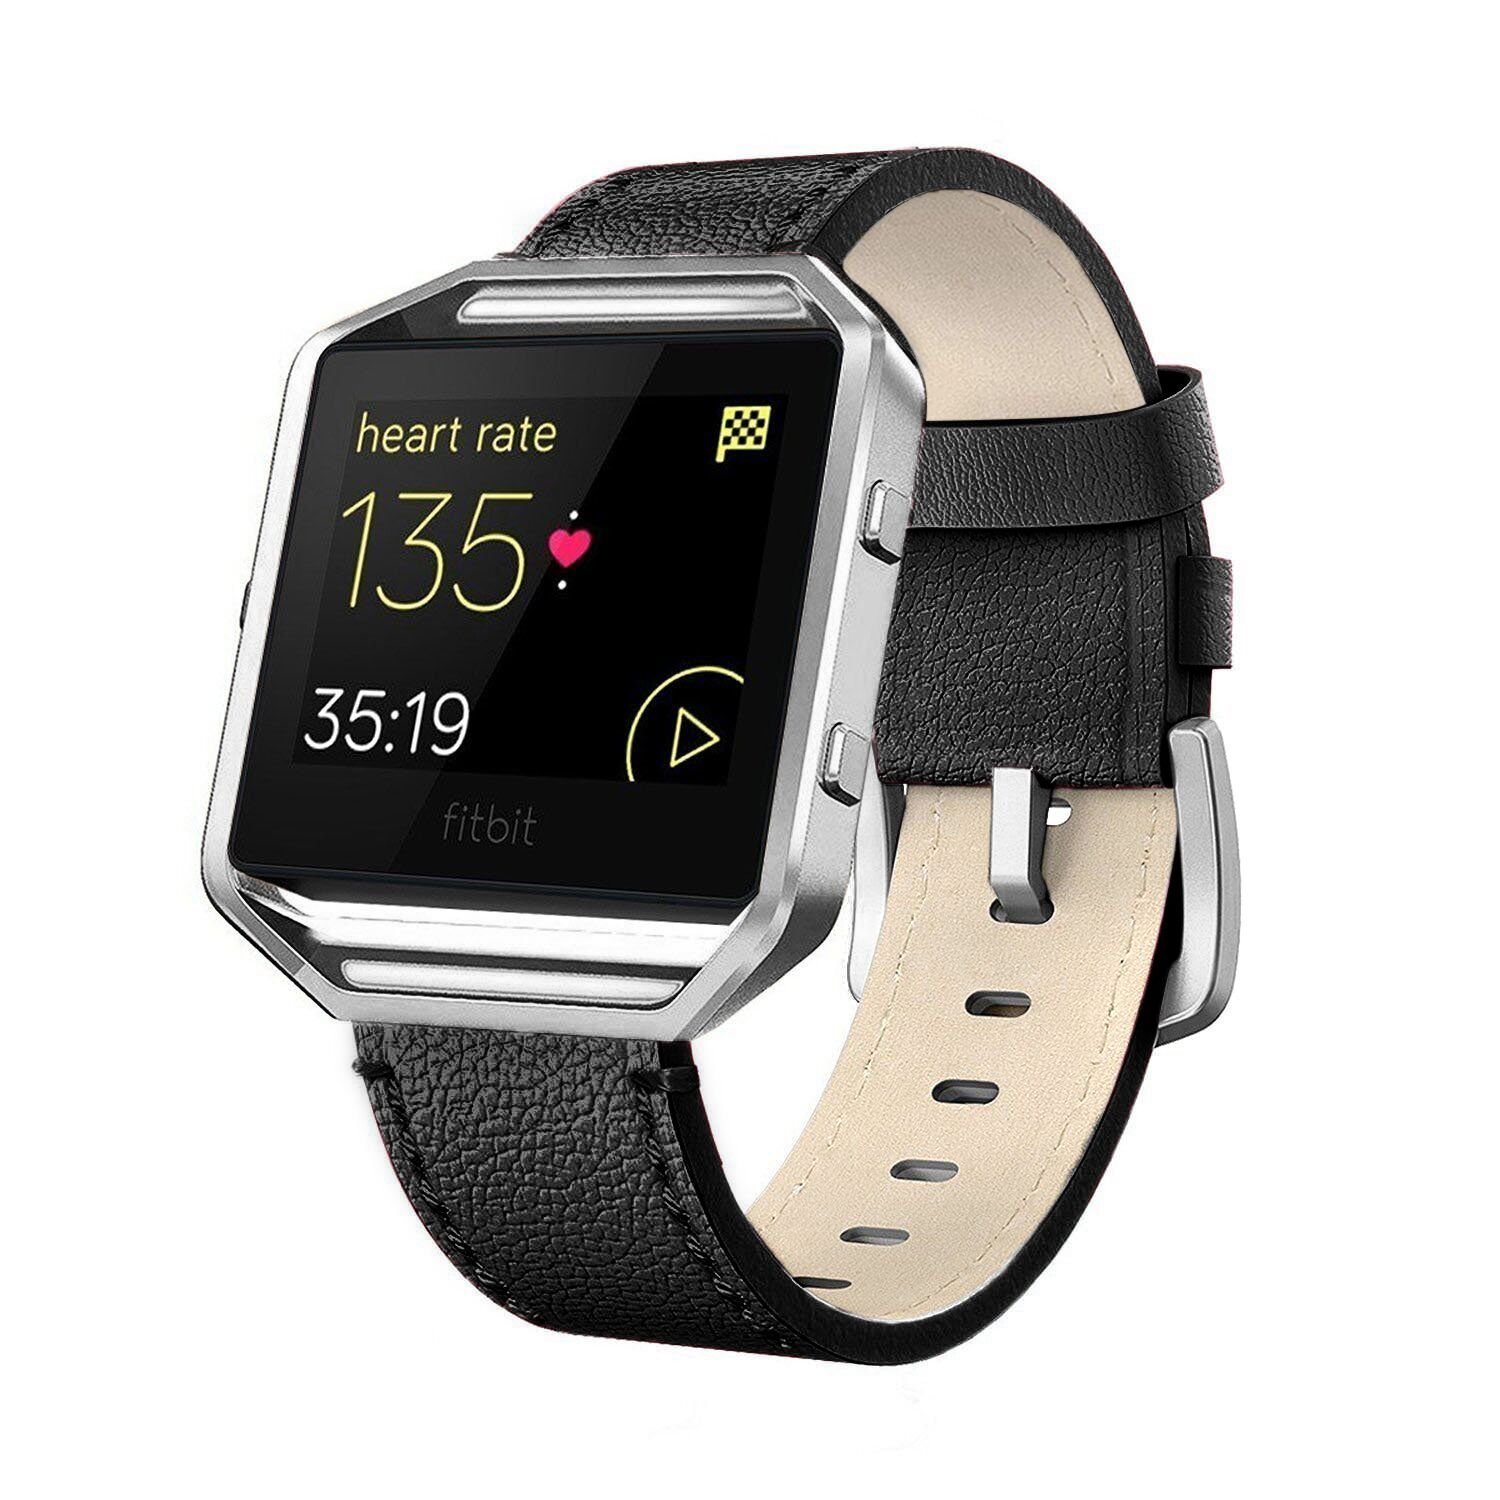 White 5-8.2 Blue Brown Pink Andyou Fitbit Blaze Bands Leather with Frame Small Large Genuine Leather Replacement Band with Silver//Rose Gold//Black Metal Frame for Fitbit Blaze Women Men Black